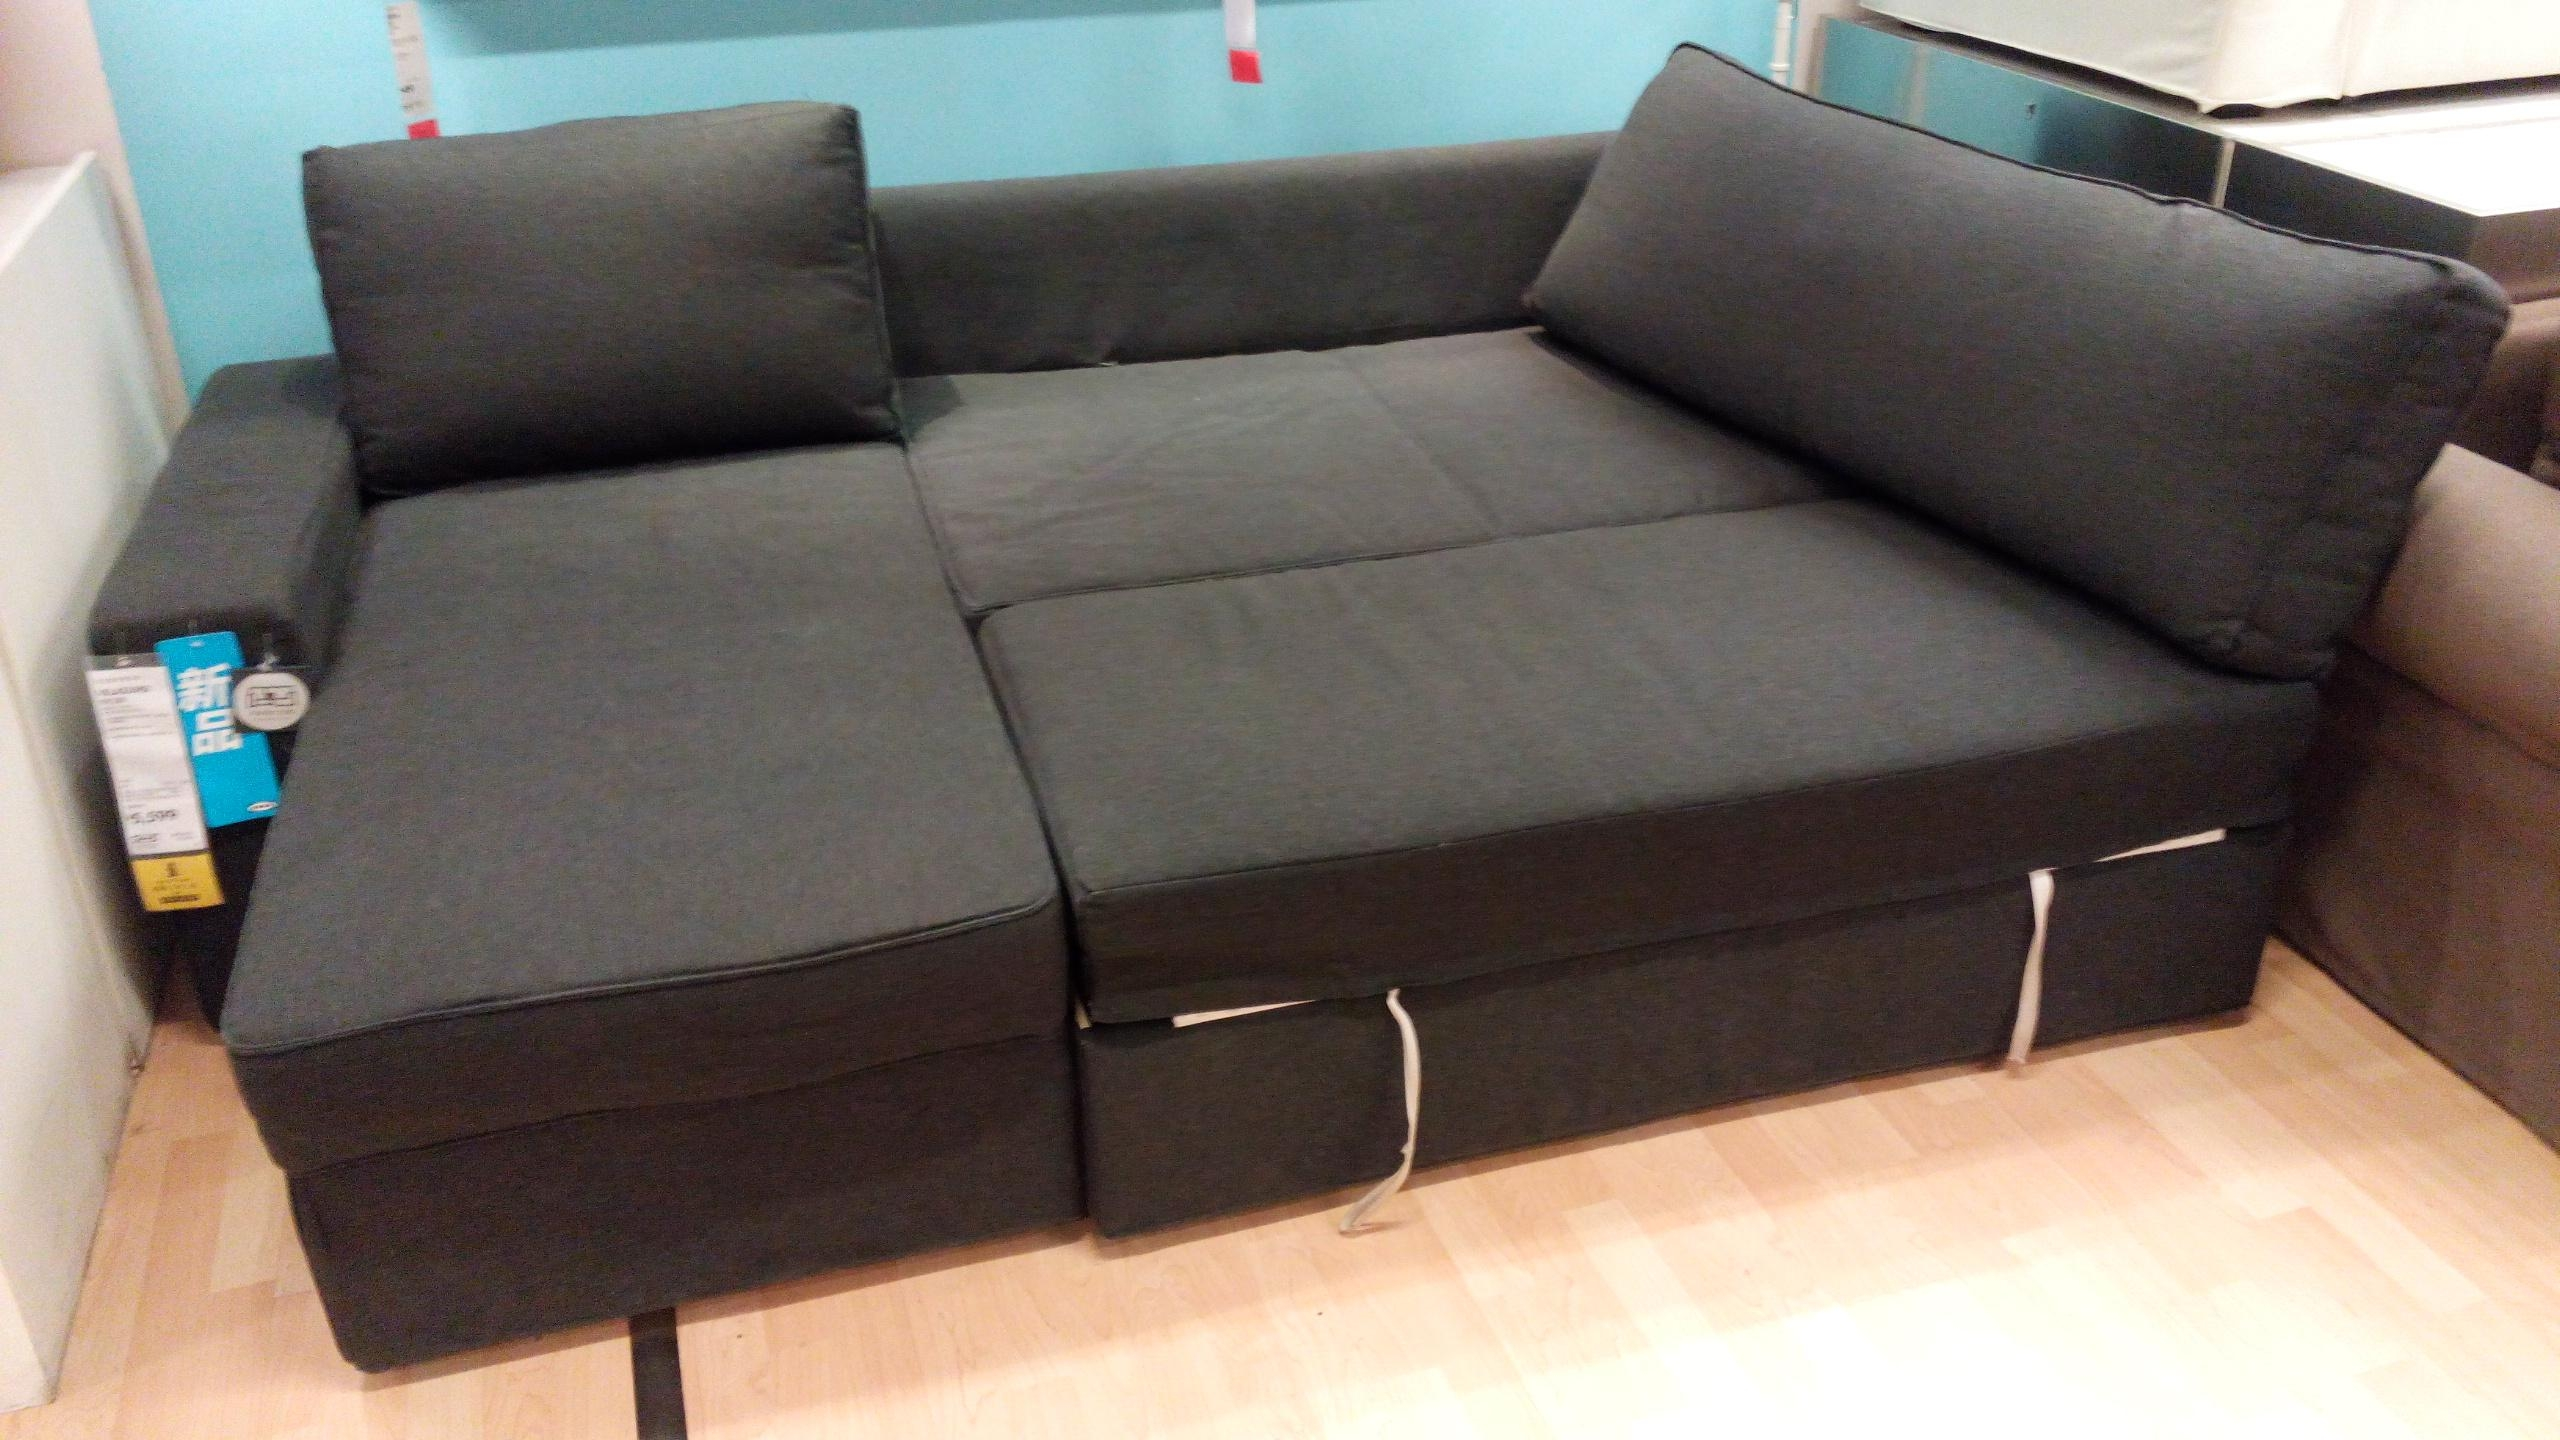 Furniture: Big Choice Of Styles And Colors Futon Beds Ikea For Intended For Ikea Sleeper Sofa Sectional (Image 6 of 20)